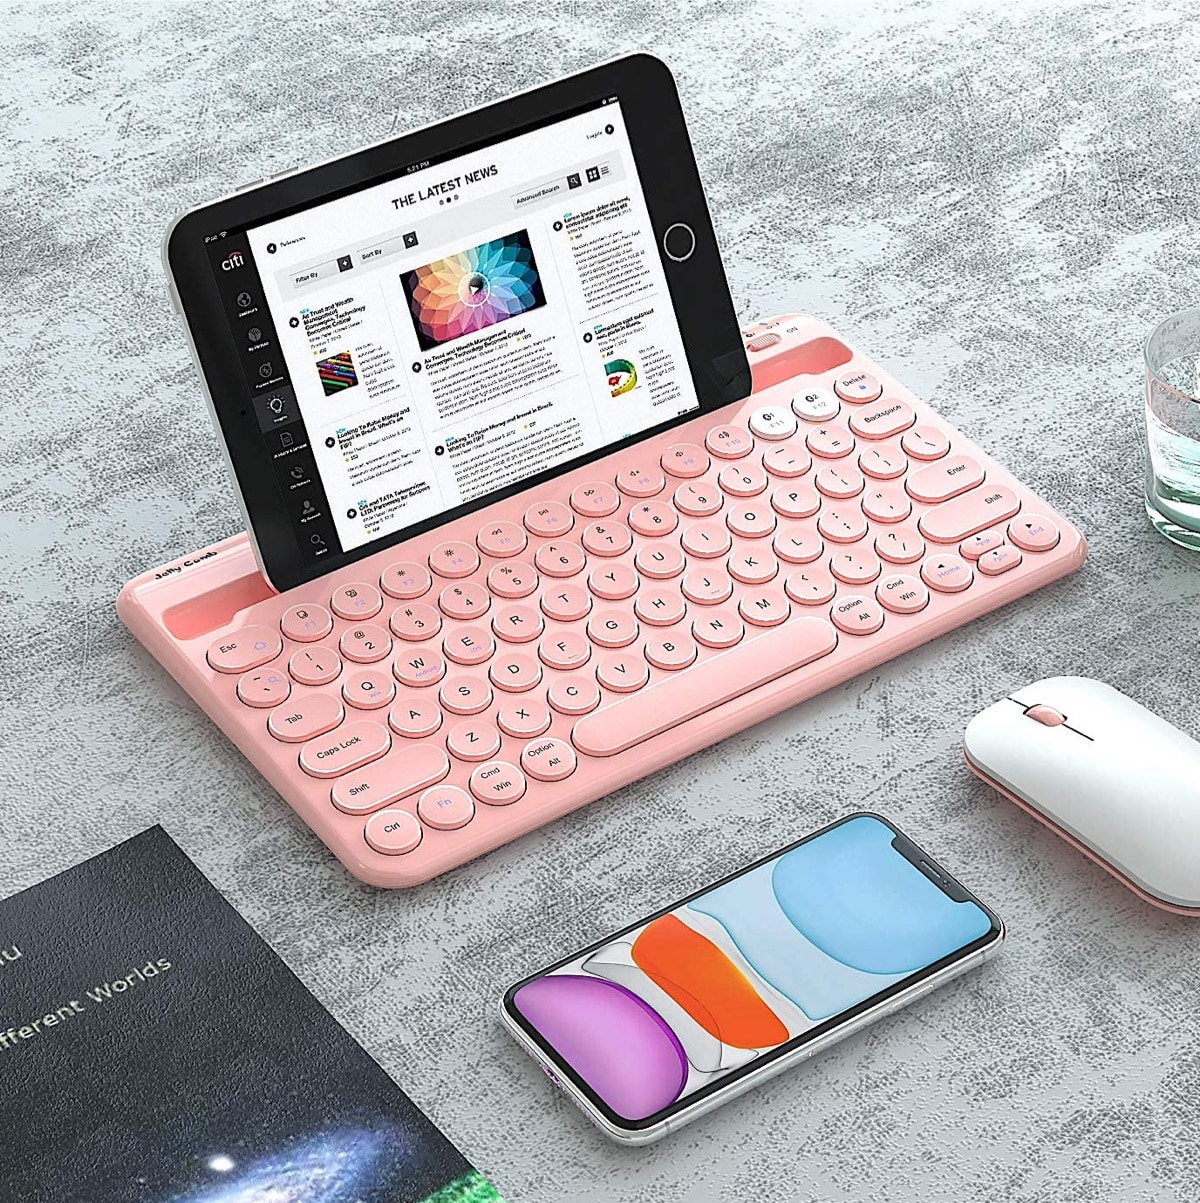 Vintage multi-device keyboard works with Amazon Fire